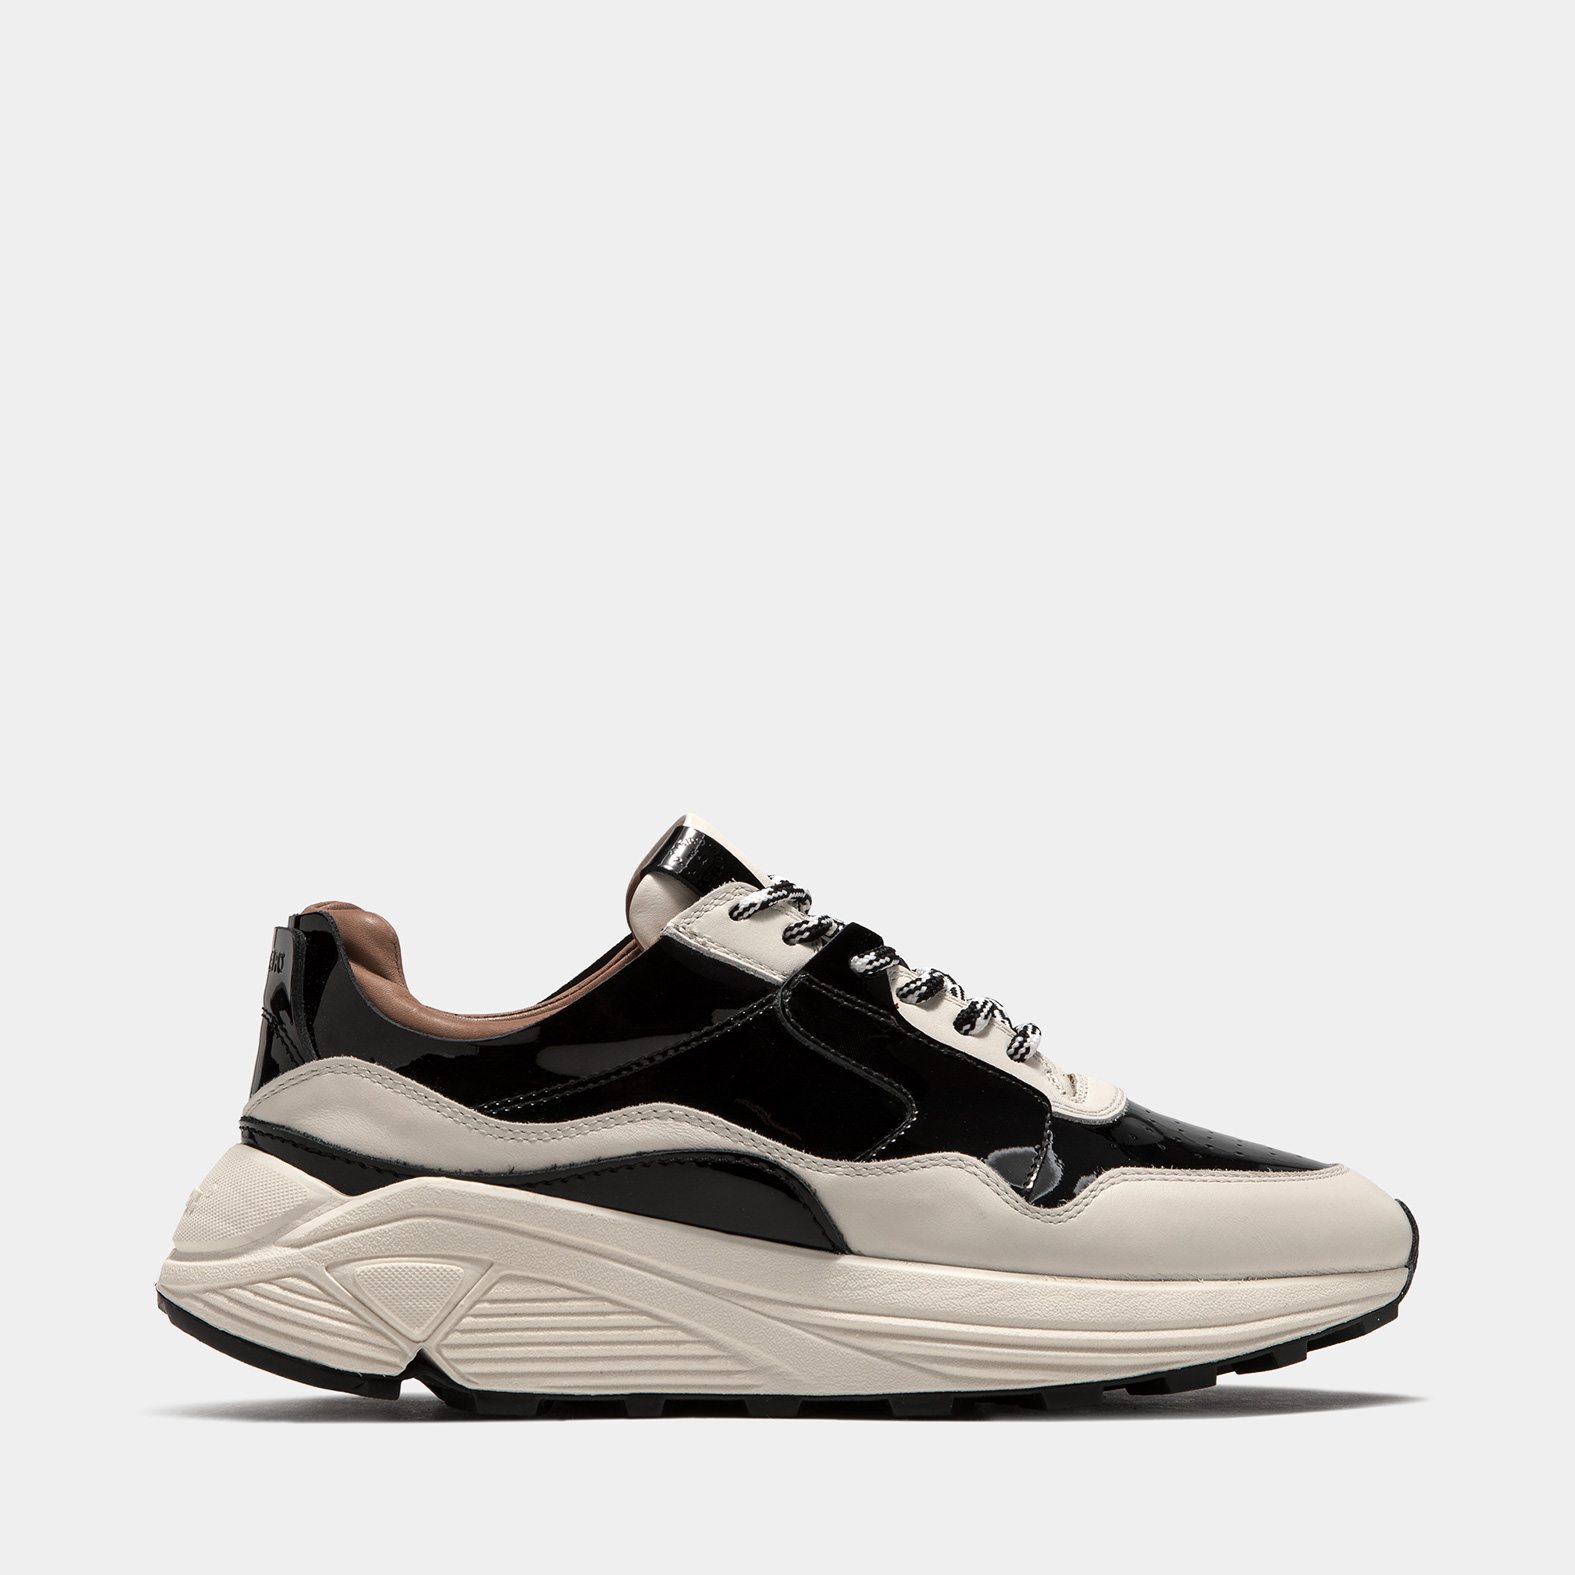 BUTTERO: VINCI SNEAKERS IN WHITE LEATHER WITH BLACK DETAILS